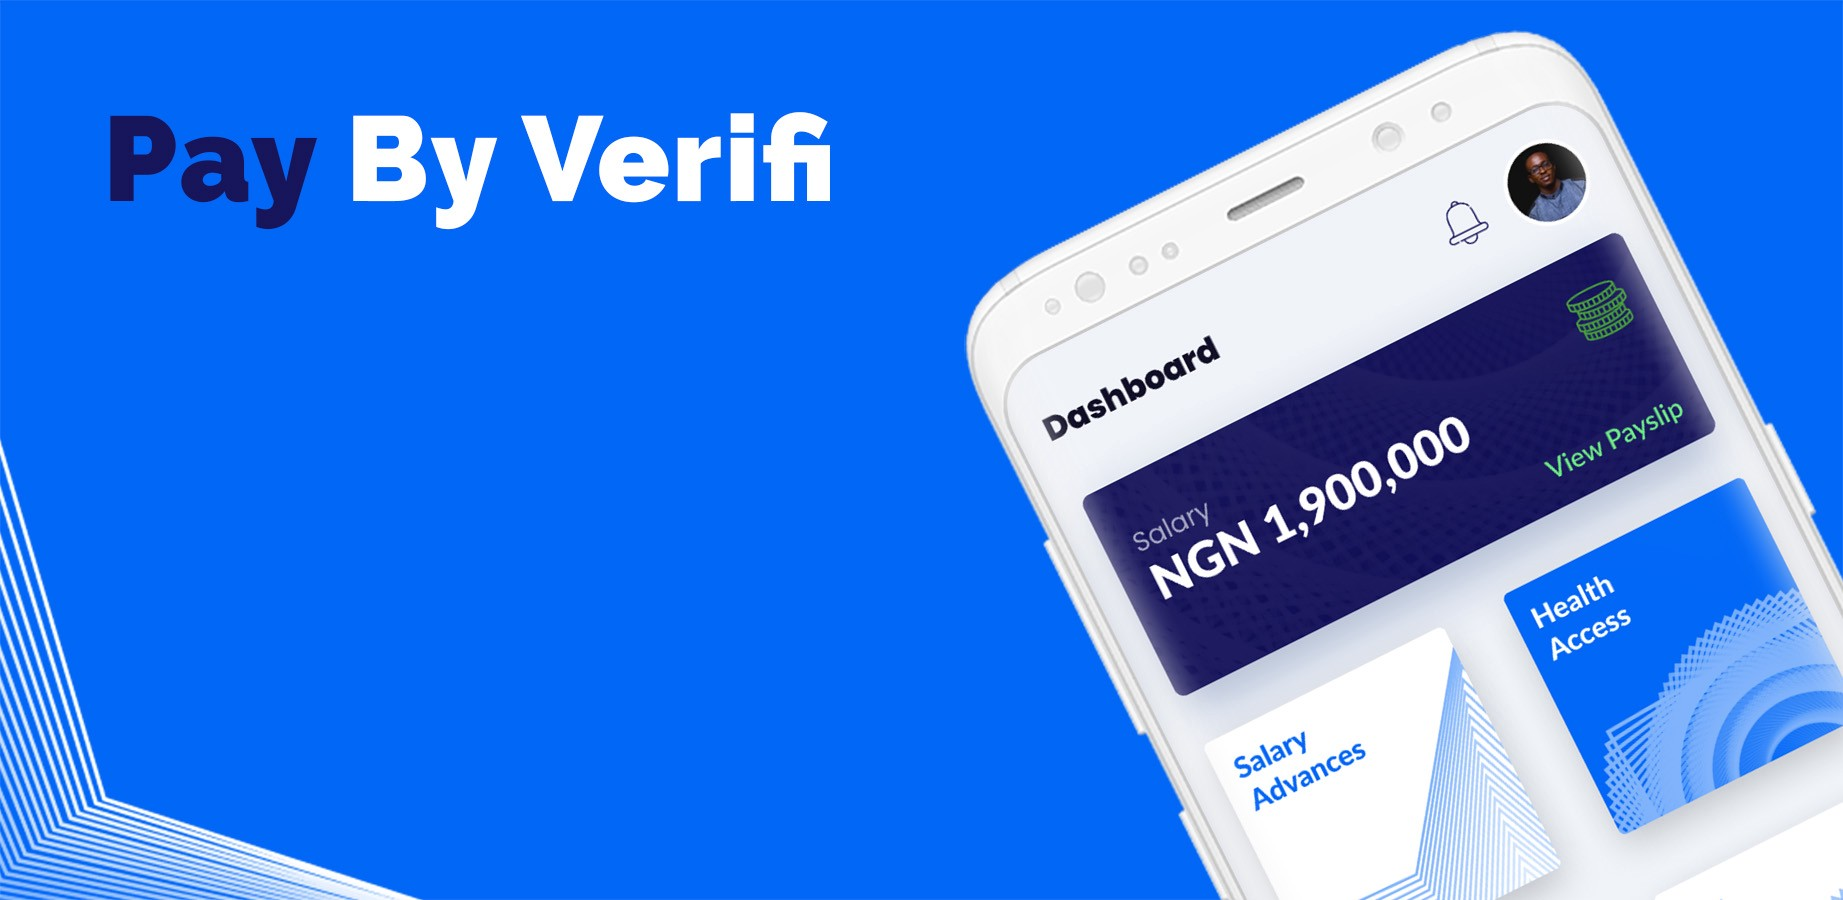 Pay By Verifi Mobile App - Verifi - Medium